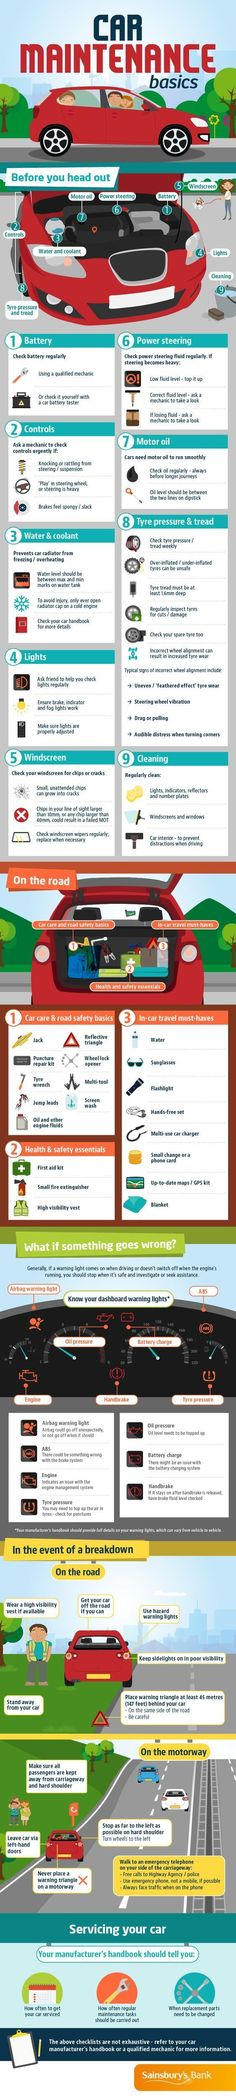 A Visual Guide to Car Maintenance #infographic #Cars #Transportation #italianinfographic